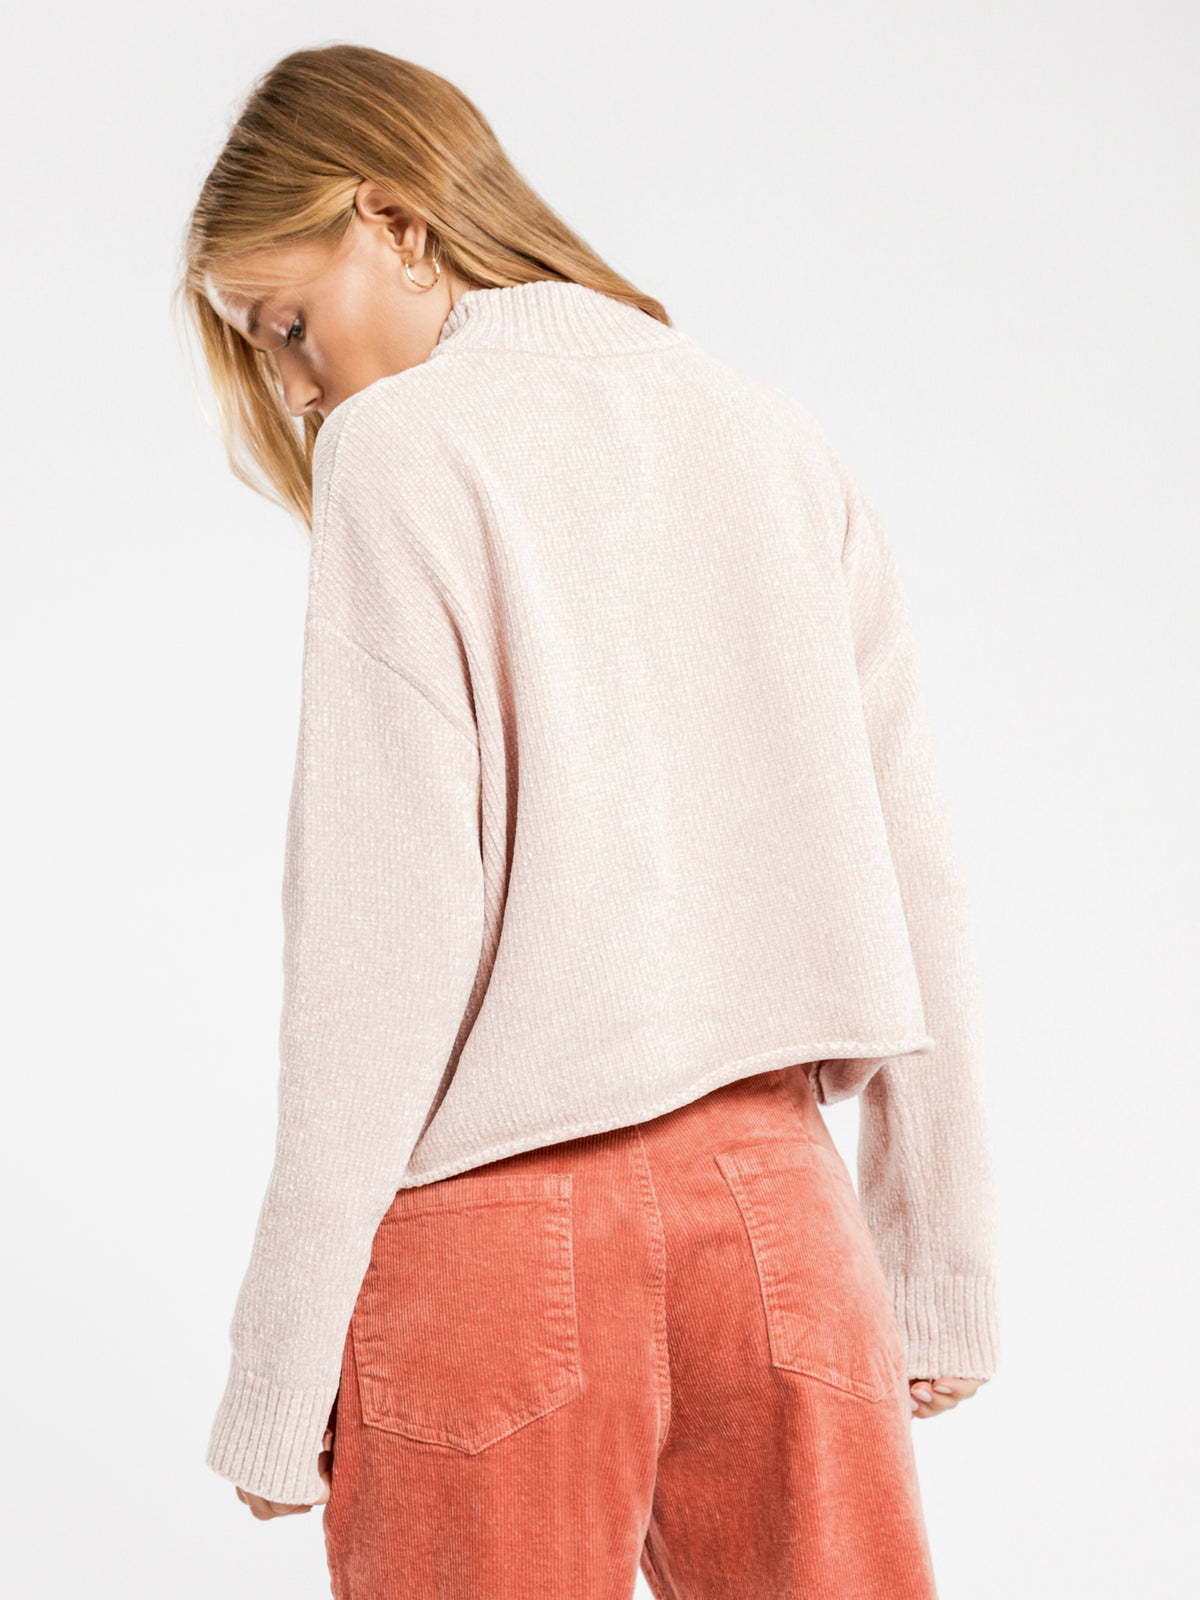 Chenille Crew Neck Knit in Cream